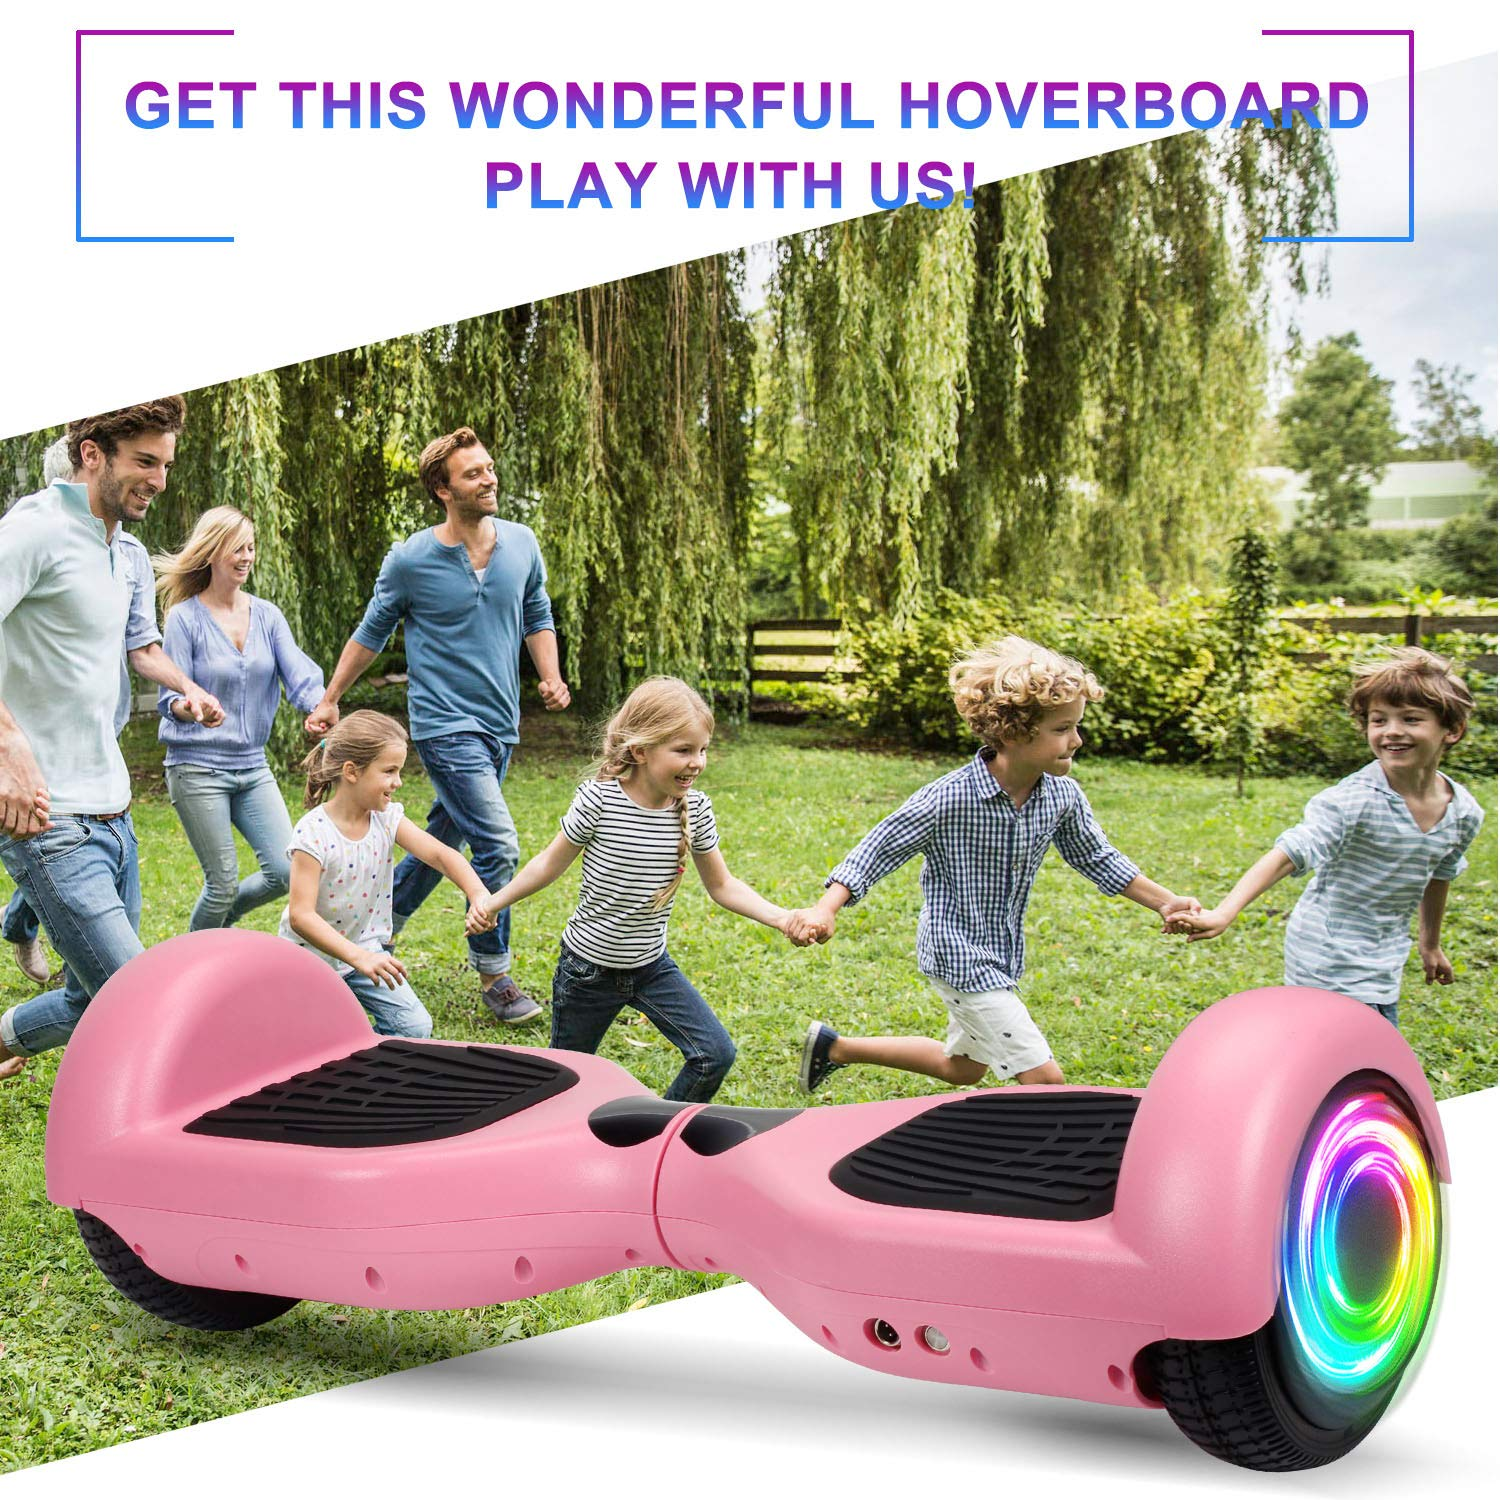 SISIGAD Hoverboard Self Balancing Scooter 6.5'' Two-Wheel Self Balancing Hoverboard with LED Lights Electric Scooter for Adult Kids Gift UL 2272 Certified - Pink by SISIGAD (Image #7)